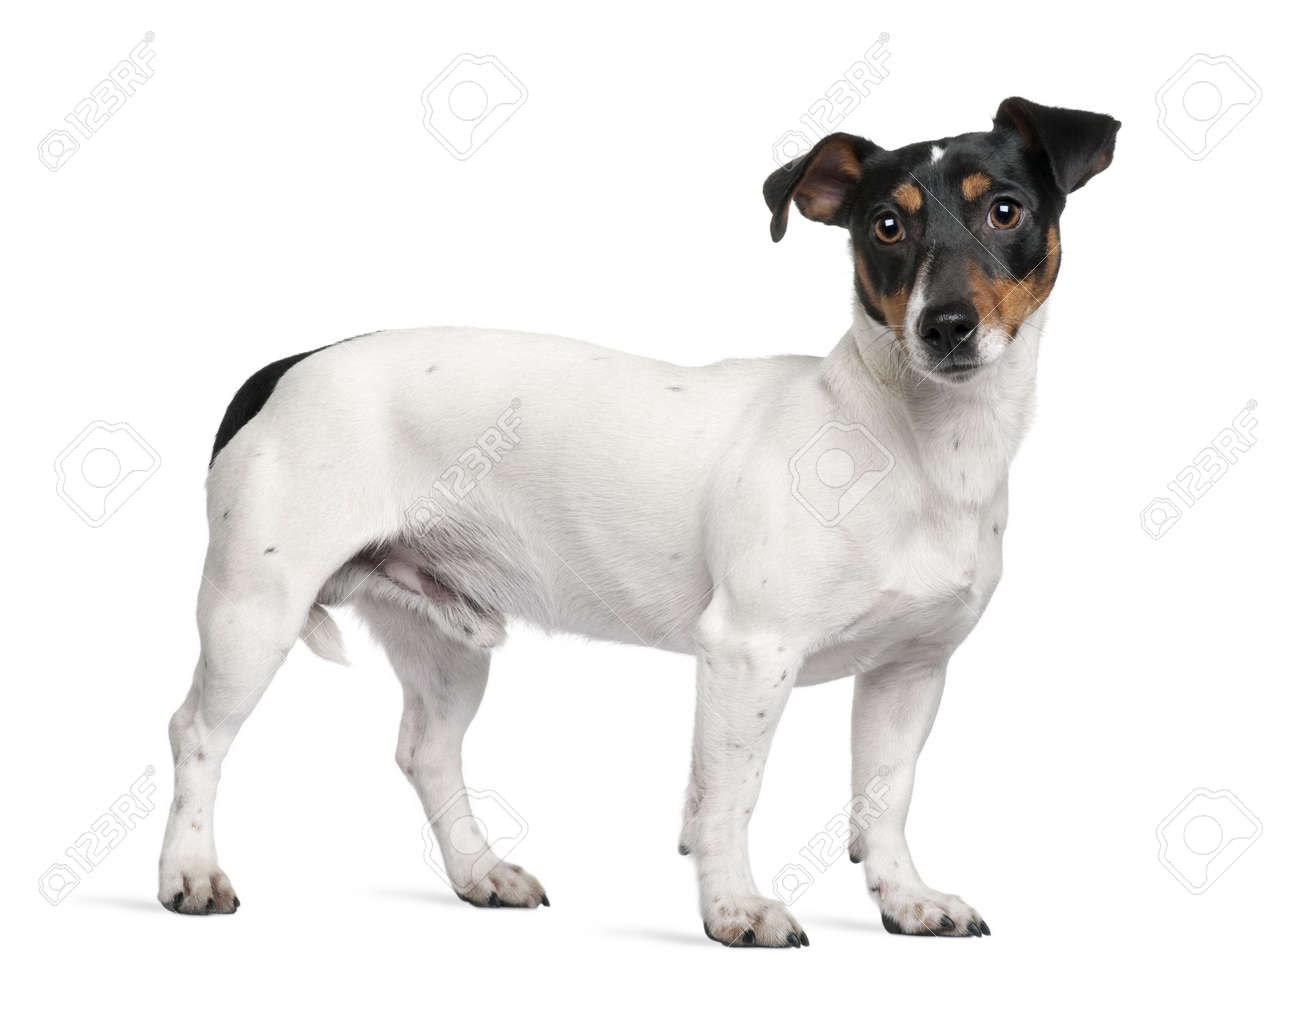 Jack Russell Terrier, 1 year old, standing in front of white background Stock Photo - 6378821